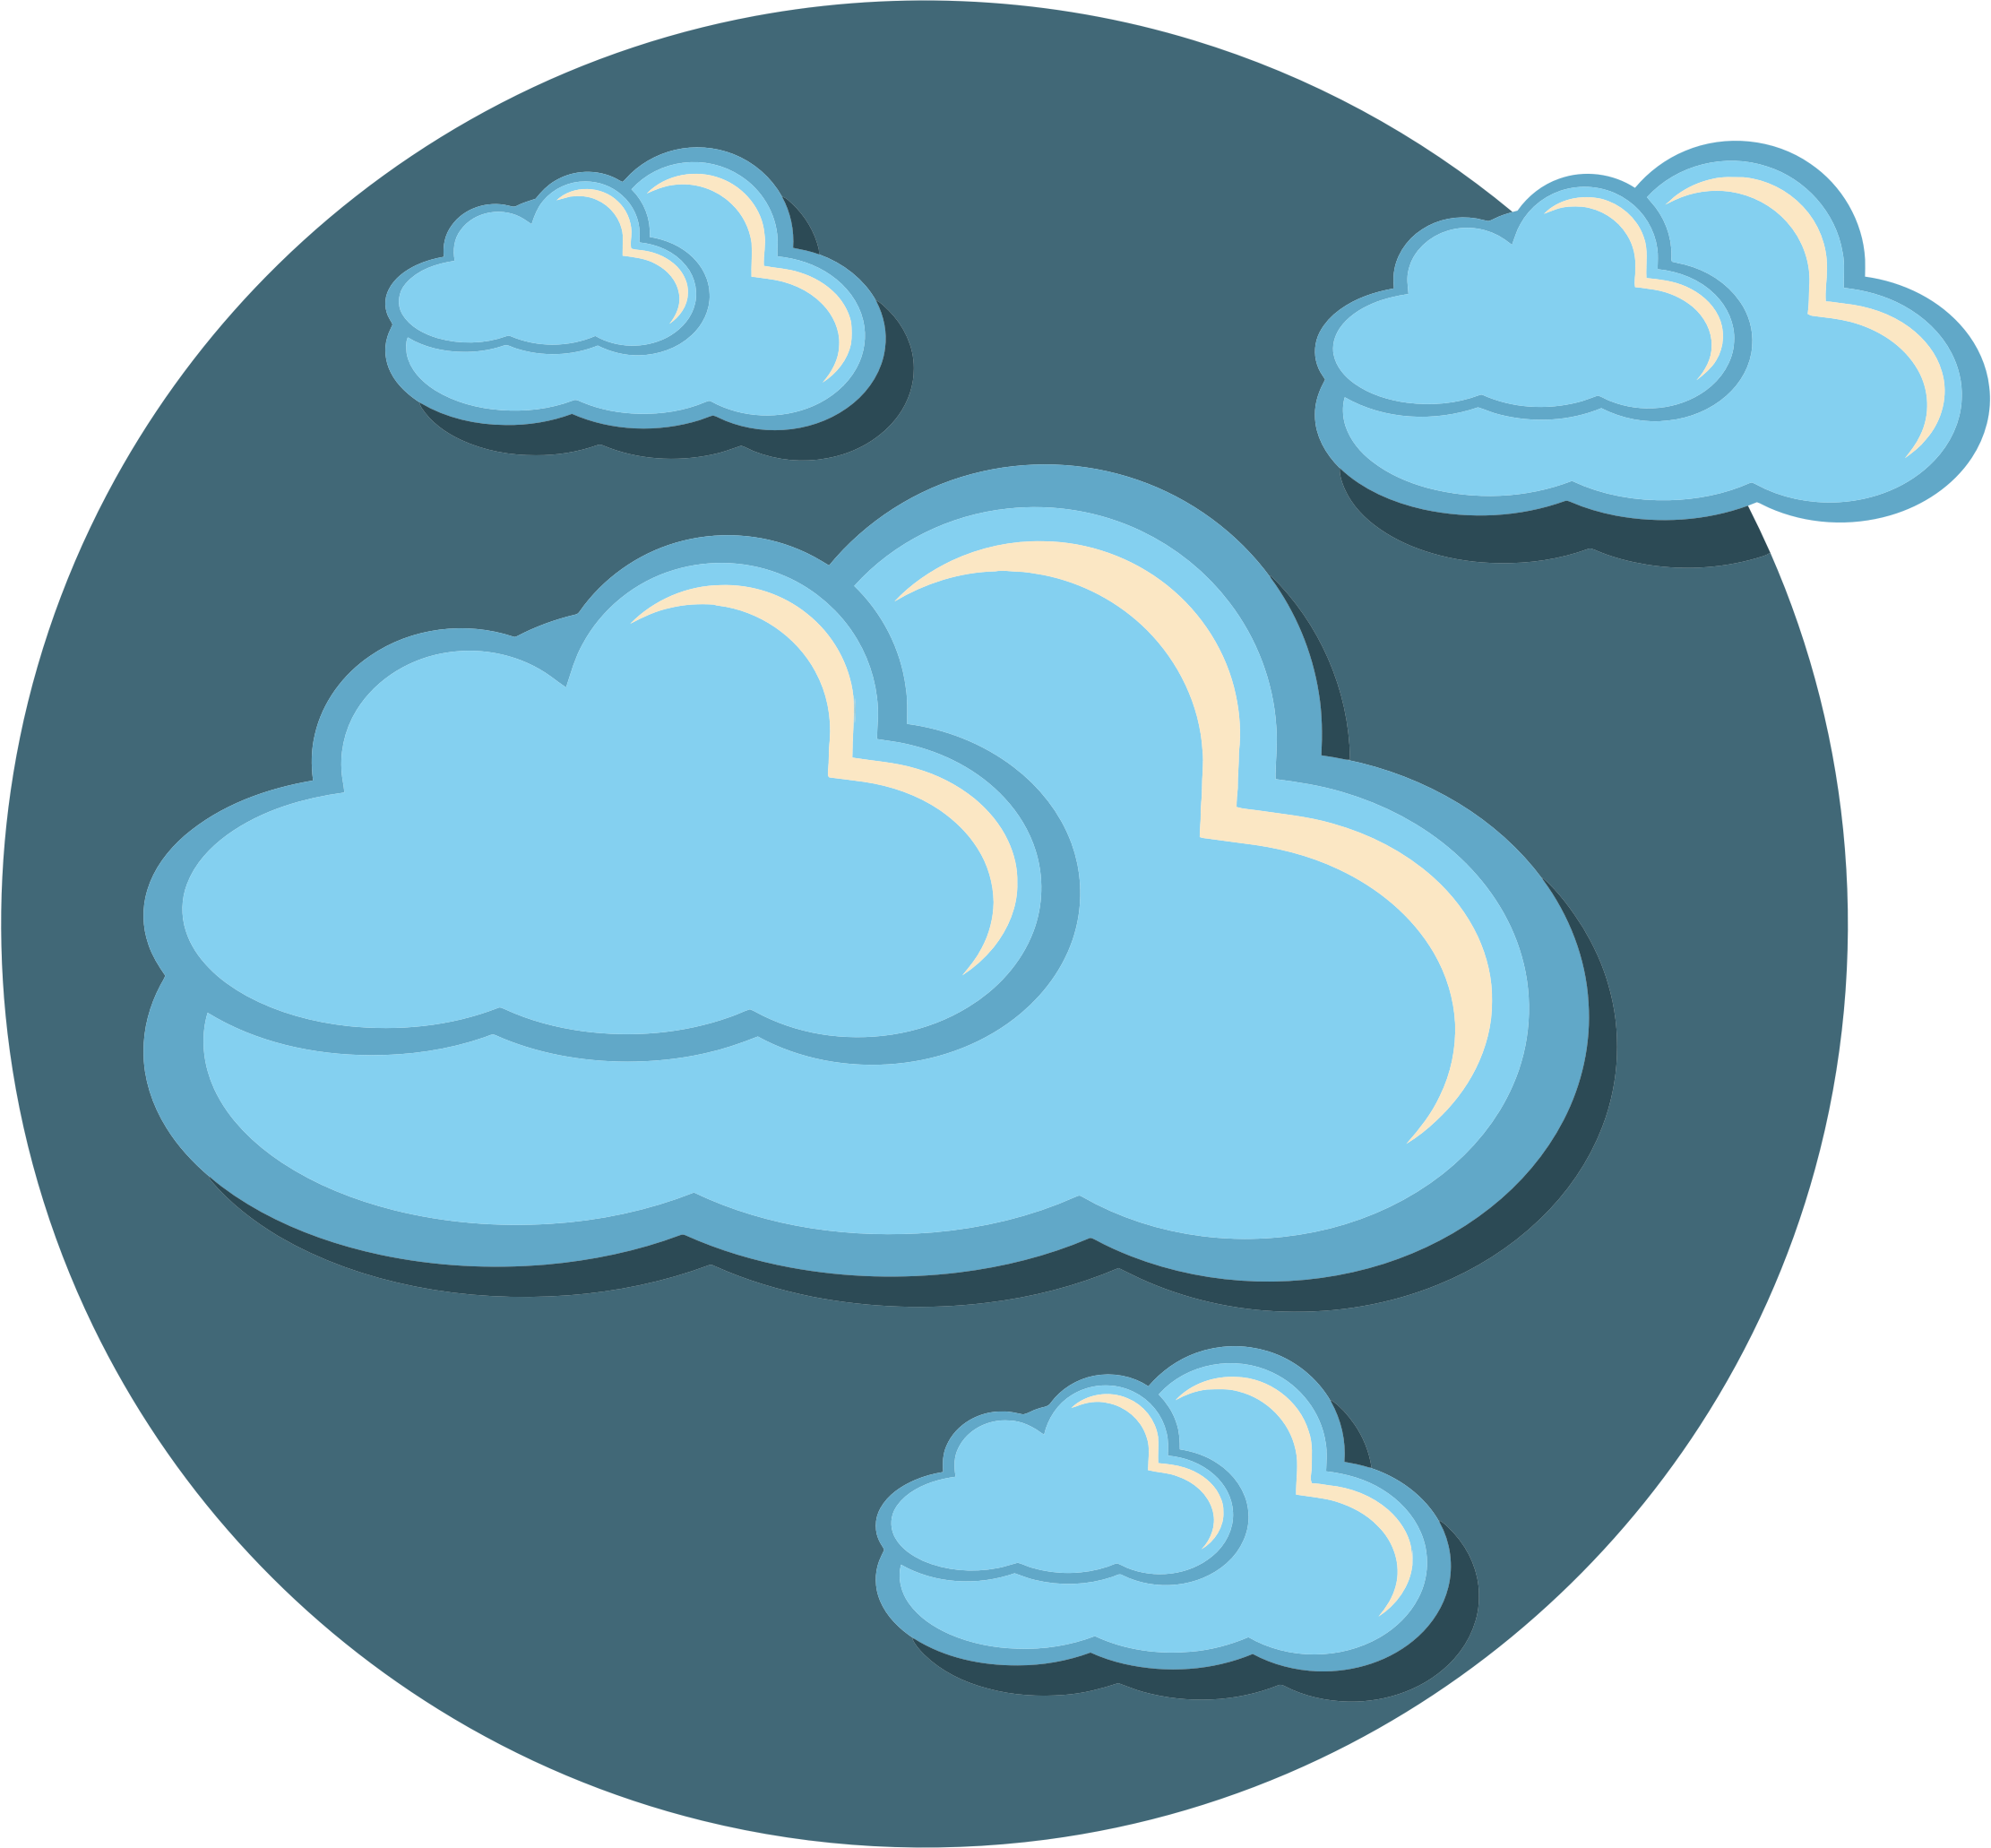 Storm icon big image. Clouds clipart brain